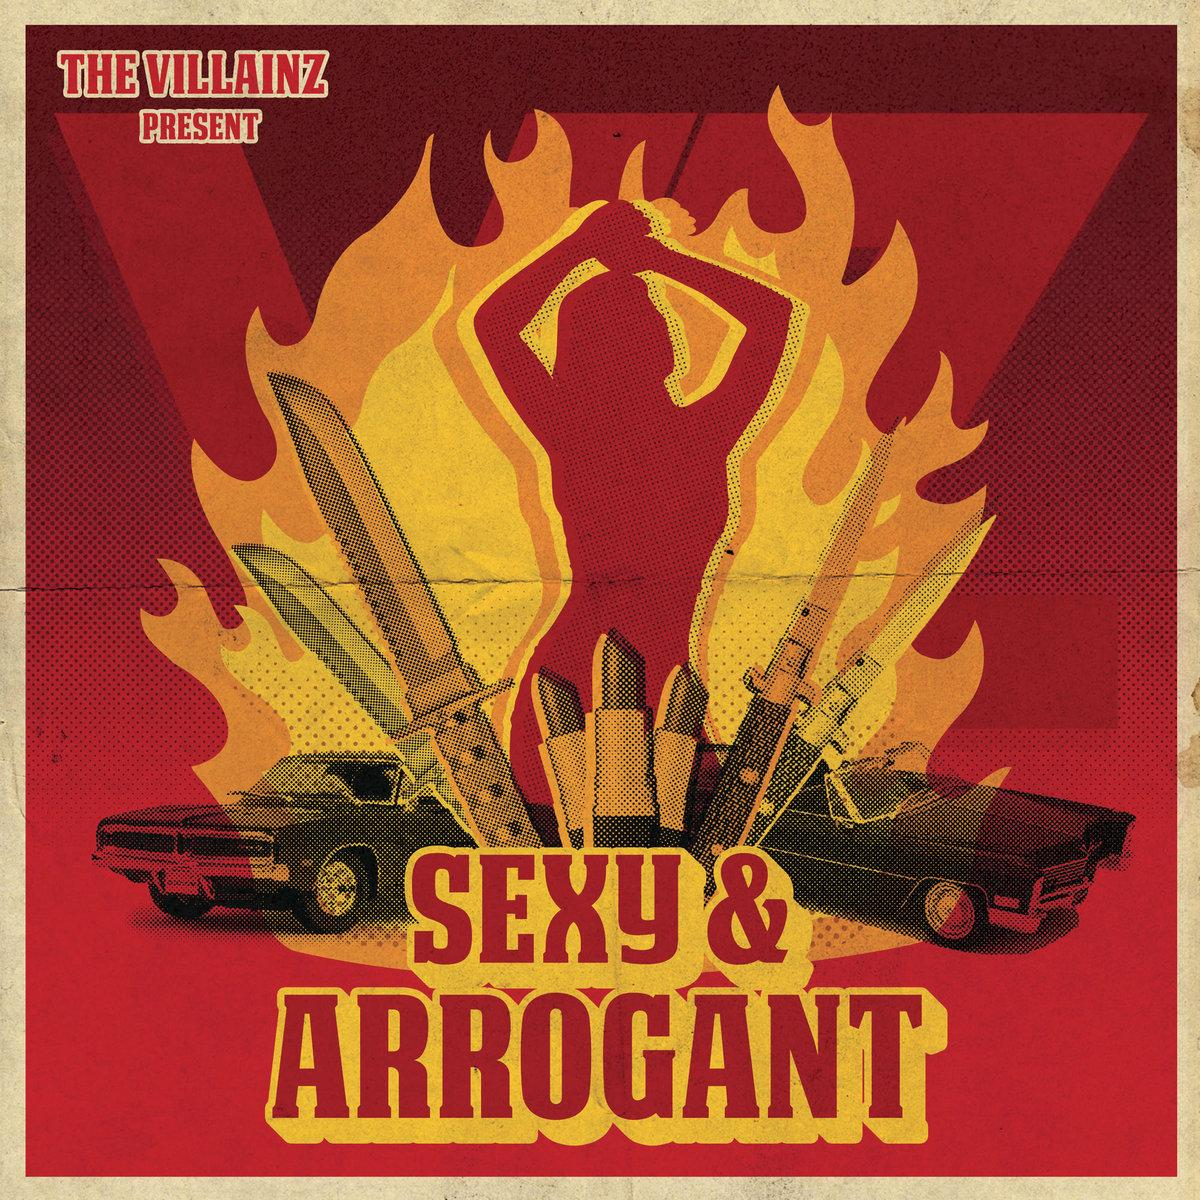 Chronique d'album : THE VILLAINZ (Rock / Punk Rock) - Sexy & Arrogant